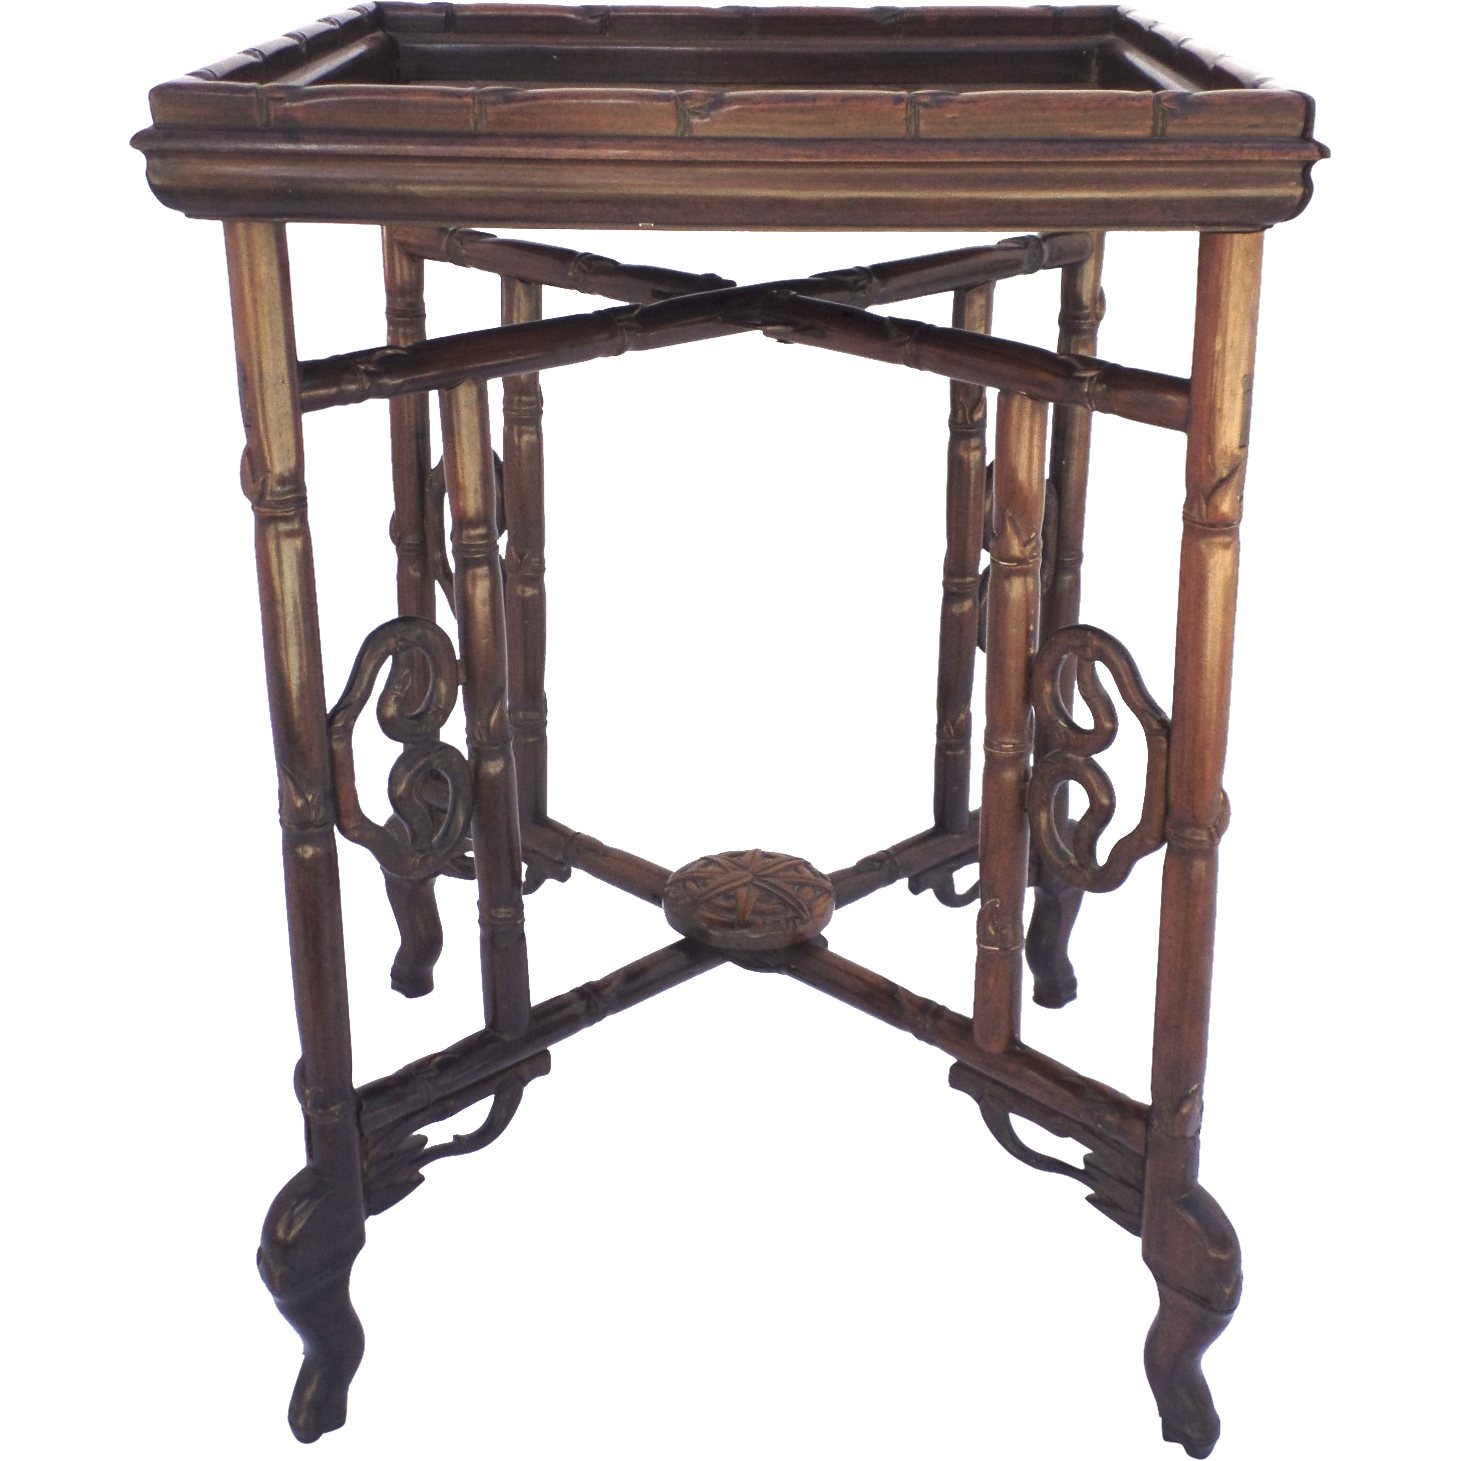 Chinese Rosewood Folding Tray Table 19th Century Bamboo